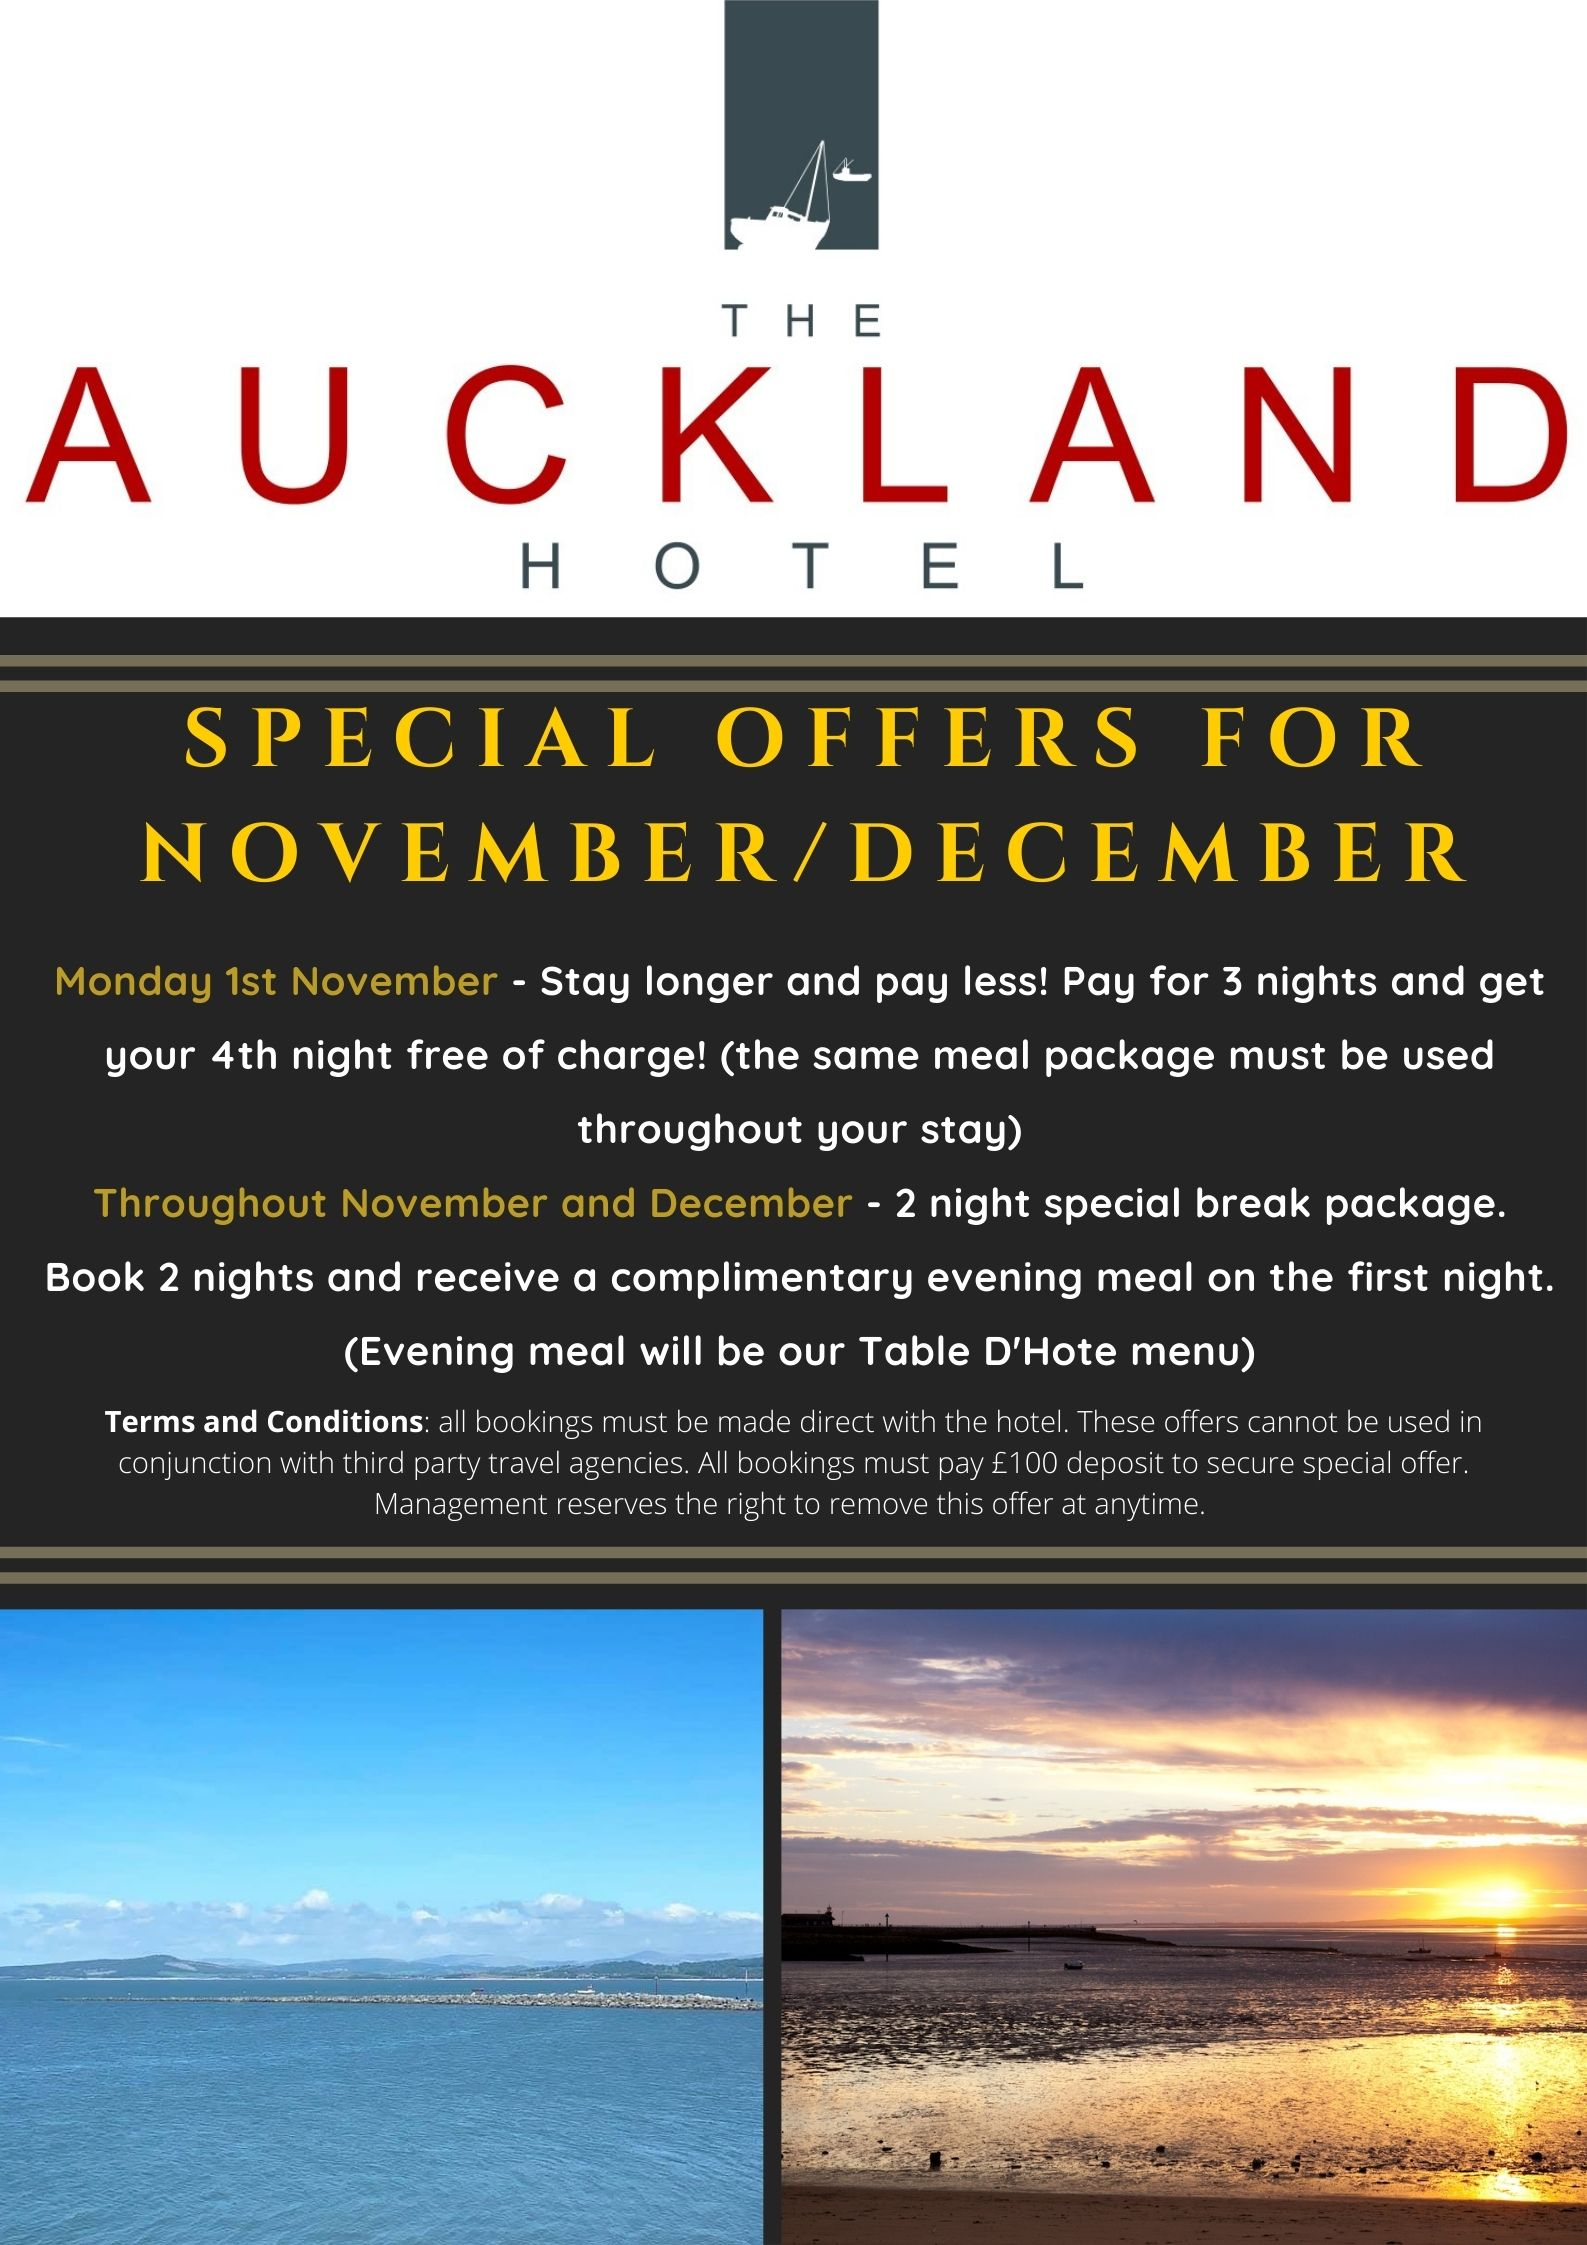 Special offers for November and December at The Auckland Hotel Morecambe